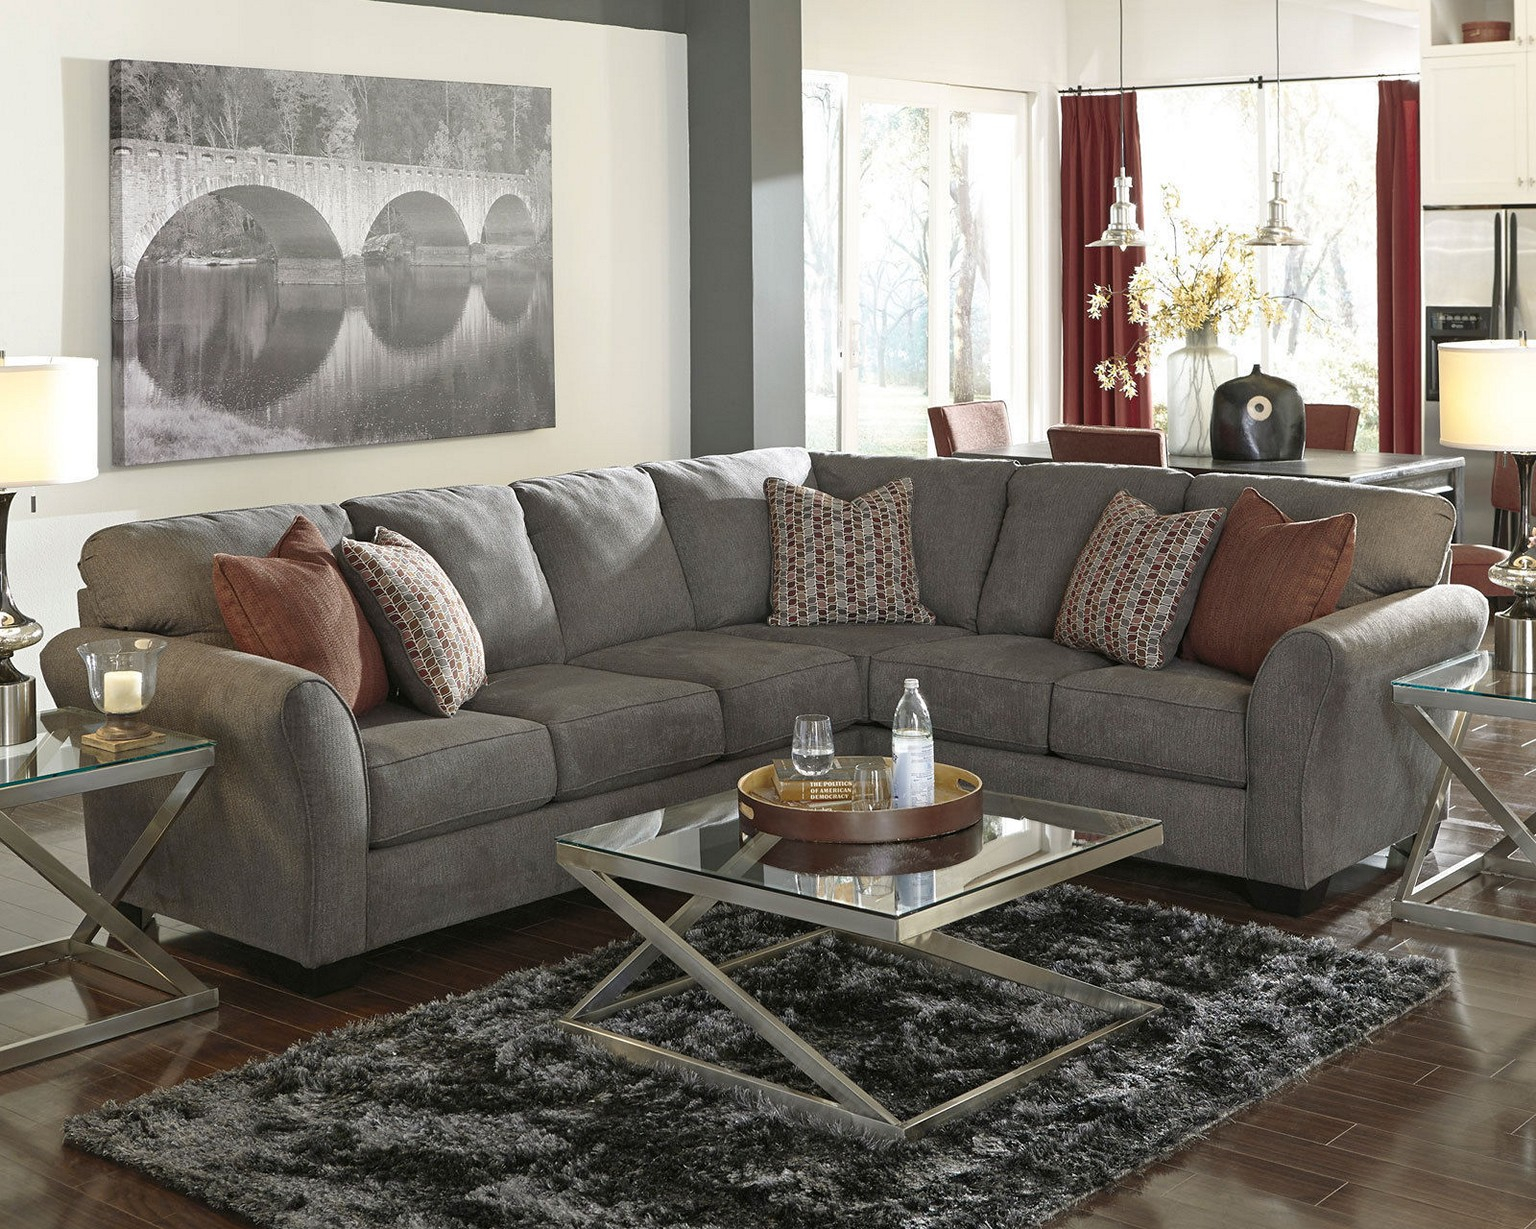 Amazing Modern Living Room Sofas With Furniture Black Used Archives Image Of intended for Inspirational Cozy Living Room Ideas